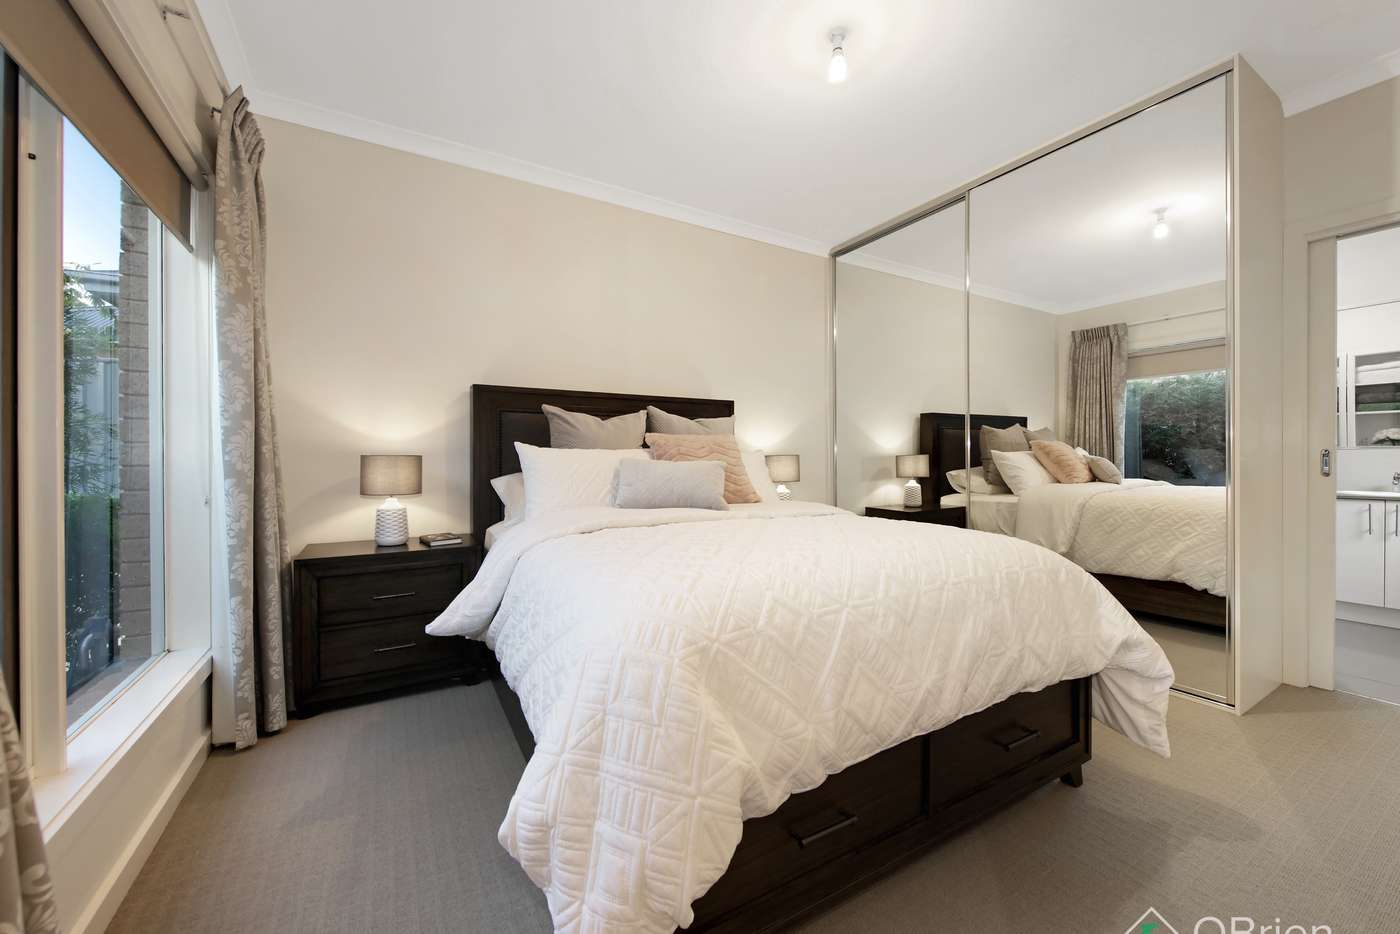 Sixth view of Homely unit listing, 2/14 Norma Avenue, Oakleigh South VIC 3167